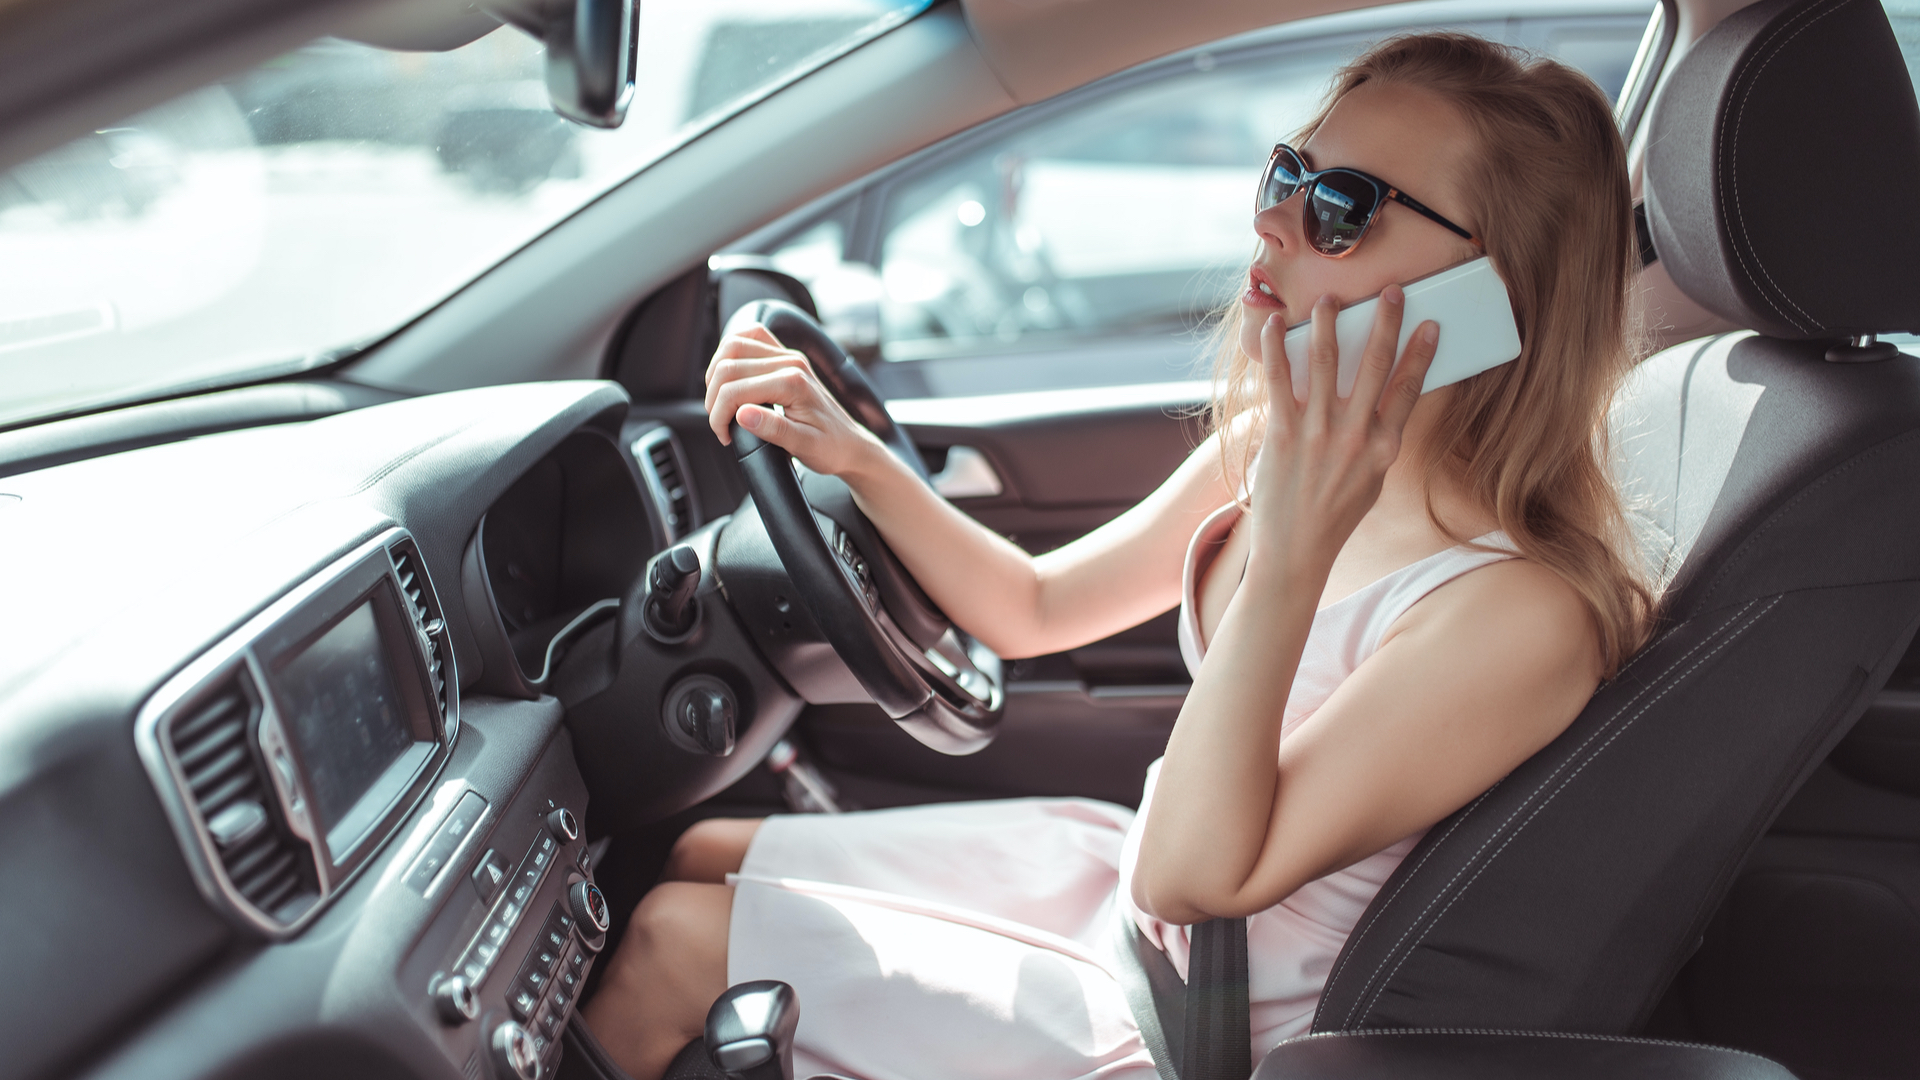 Drivers flouting mobile phone use laws